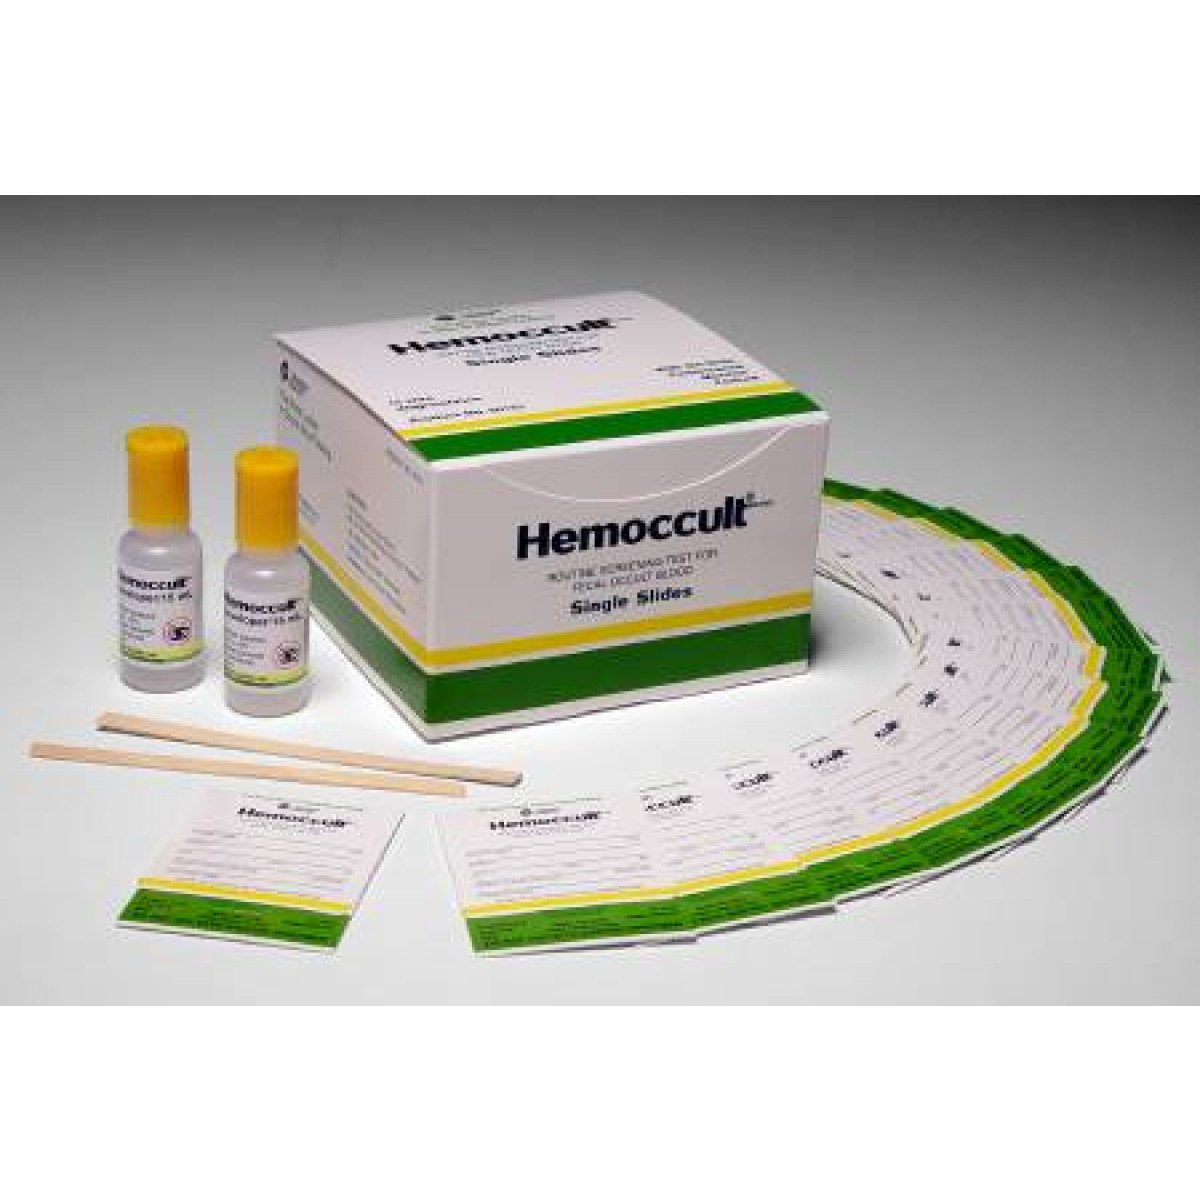 Hemoccult Single Slides Rapid Diagnostic Test Kit 60151a